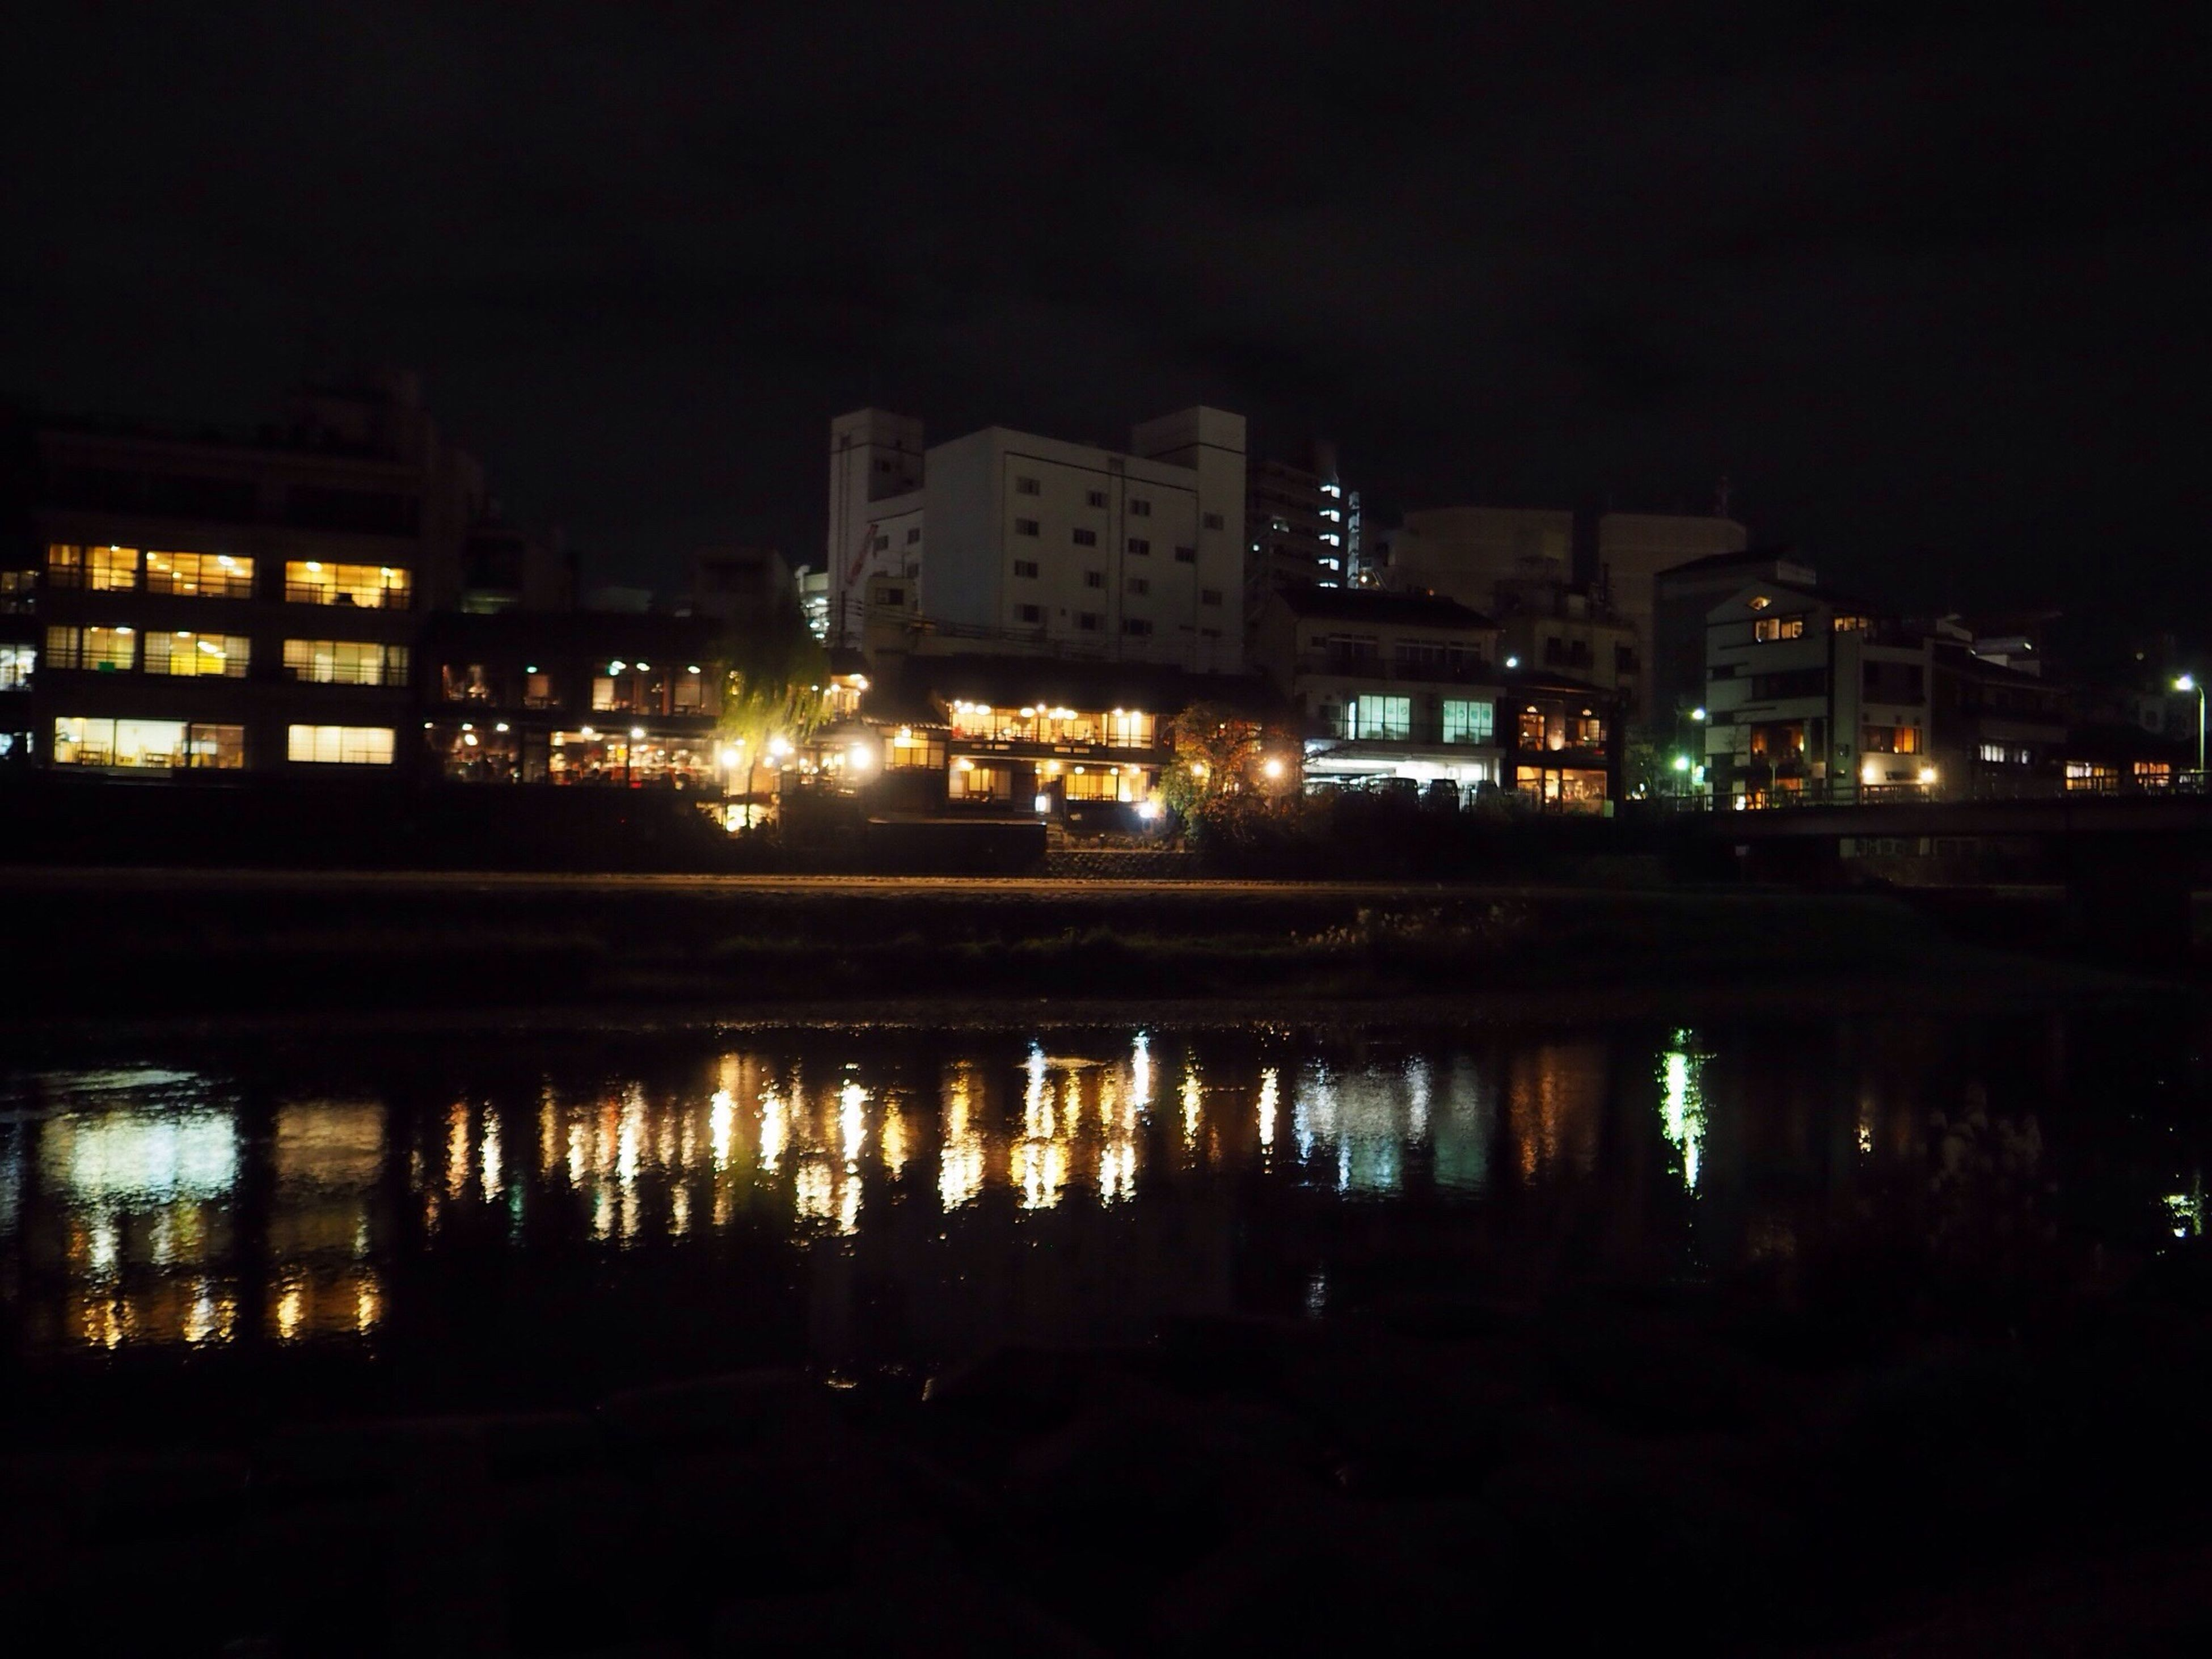 reflection, architecture, night, illuminated, building exterior, built structure, city, water, sky, no people, outdoors, cityscape